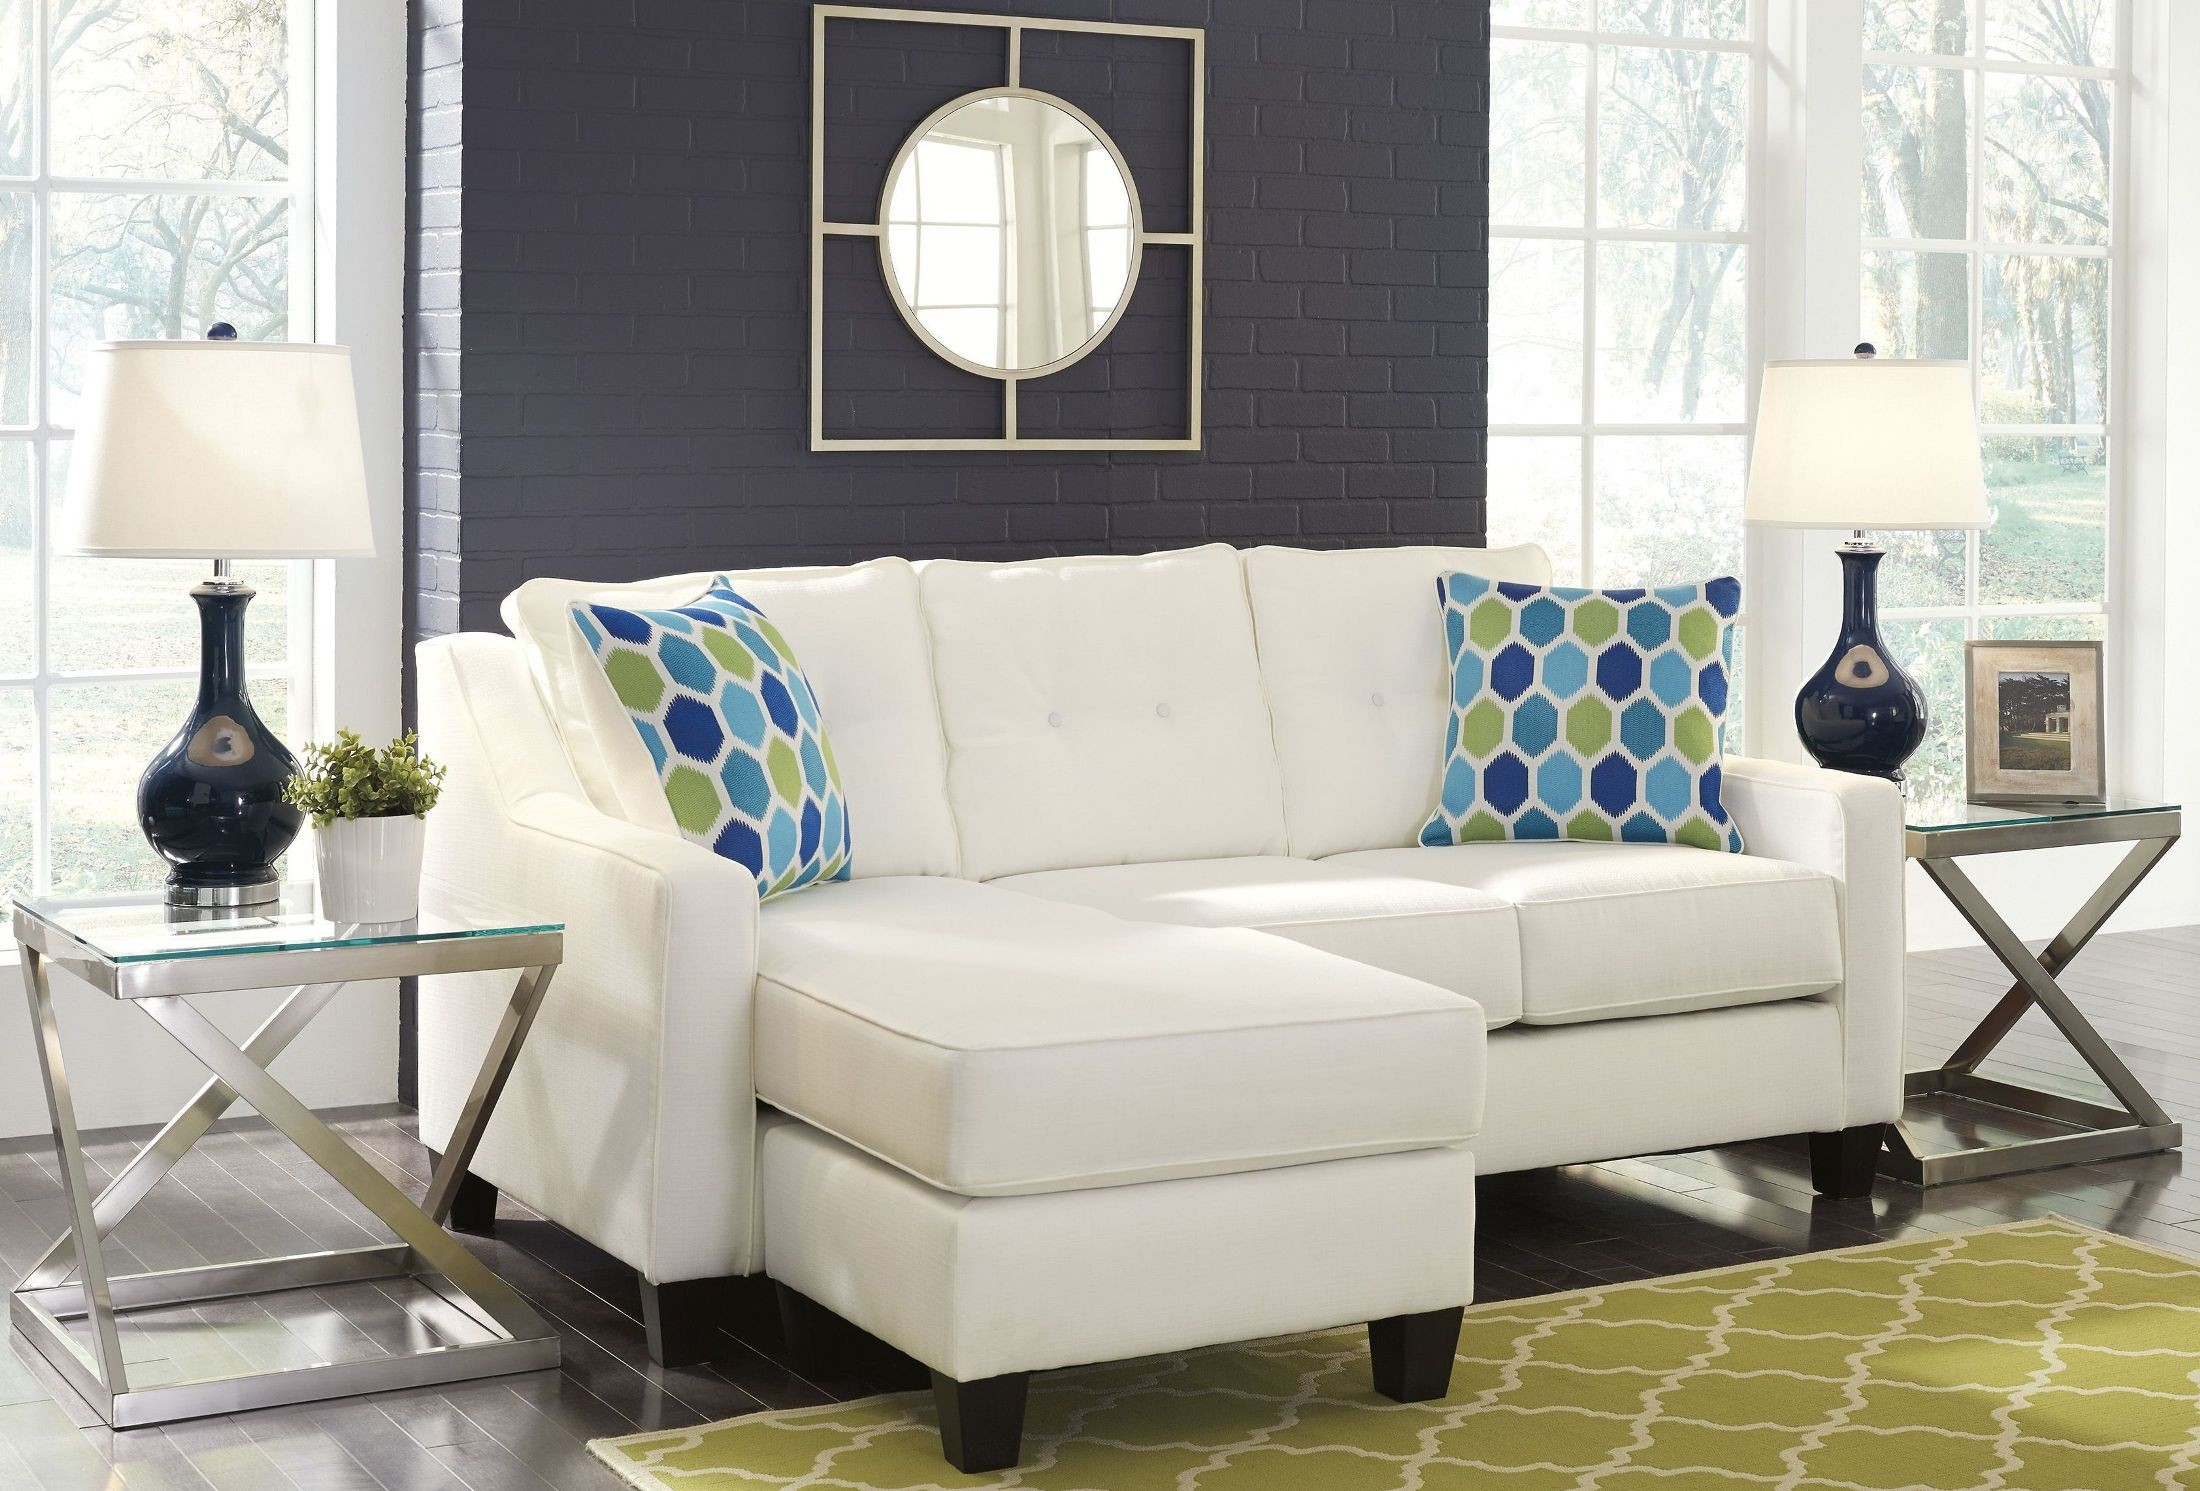 Aldie Nuvella White Queen Sofa Chaise Sleeper From Ashley